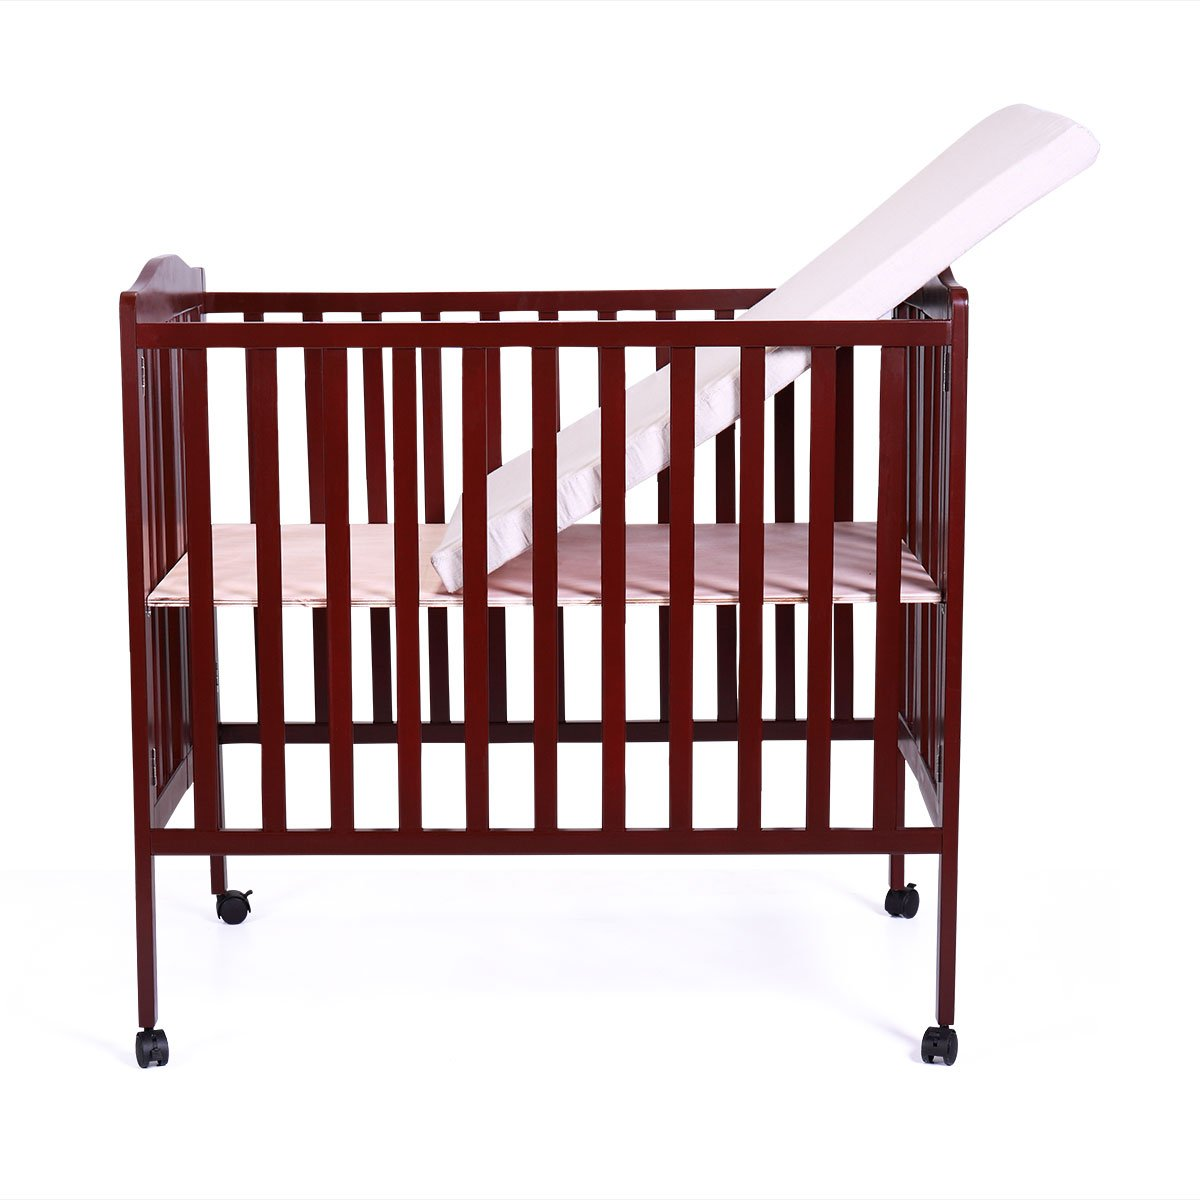 Amazon com lazymoon portable pine wood baby crib toddler bed nursery furniture safety coffee brown baby